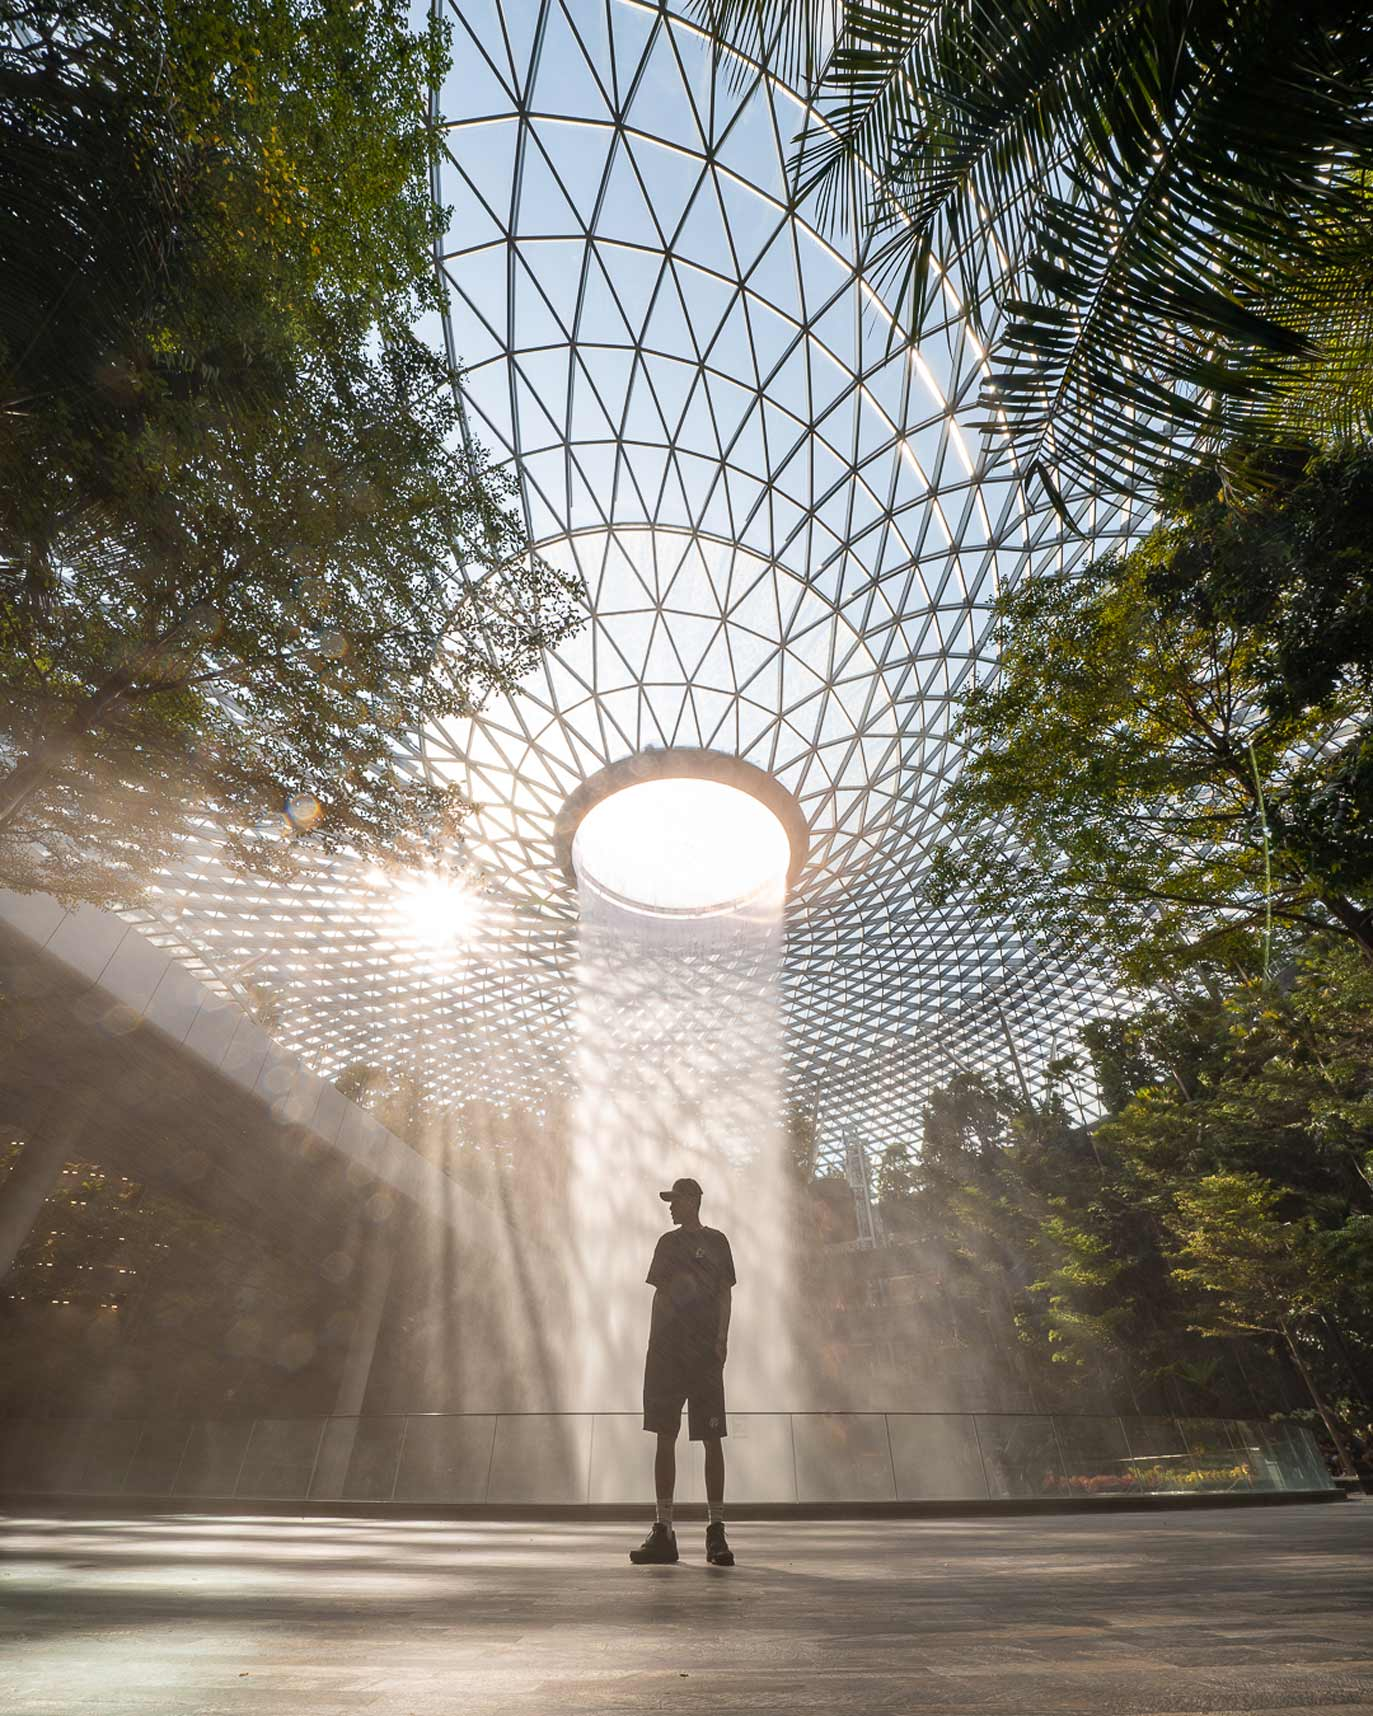 Most Instagrammable Places in Singapore/@j9ryl